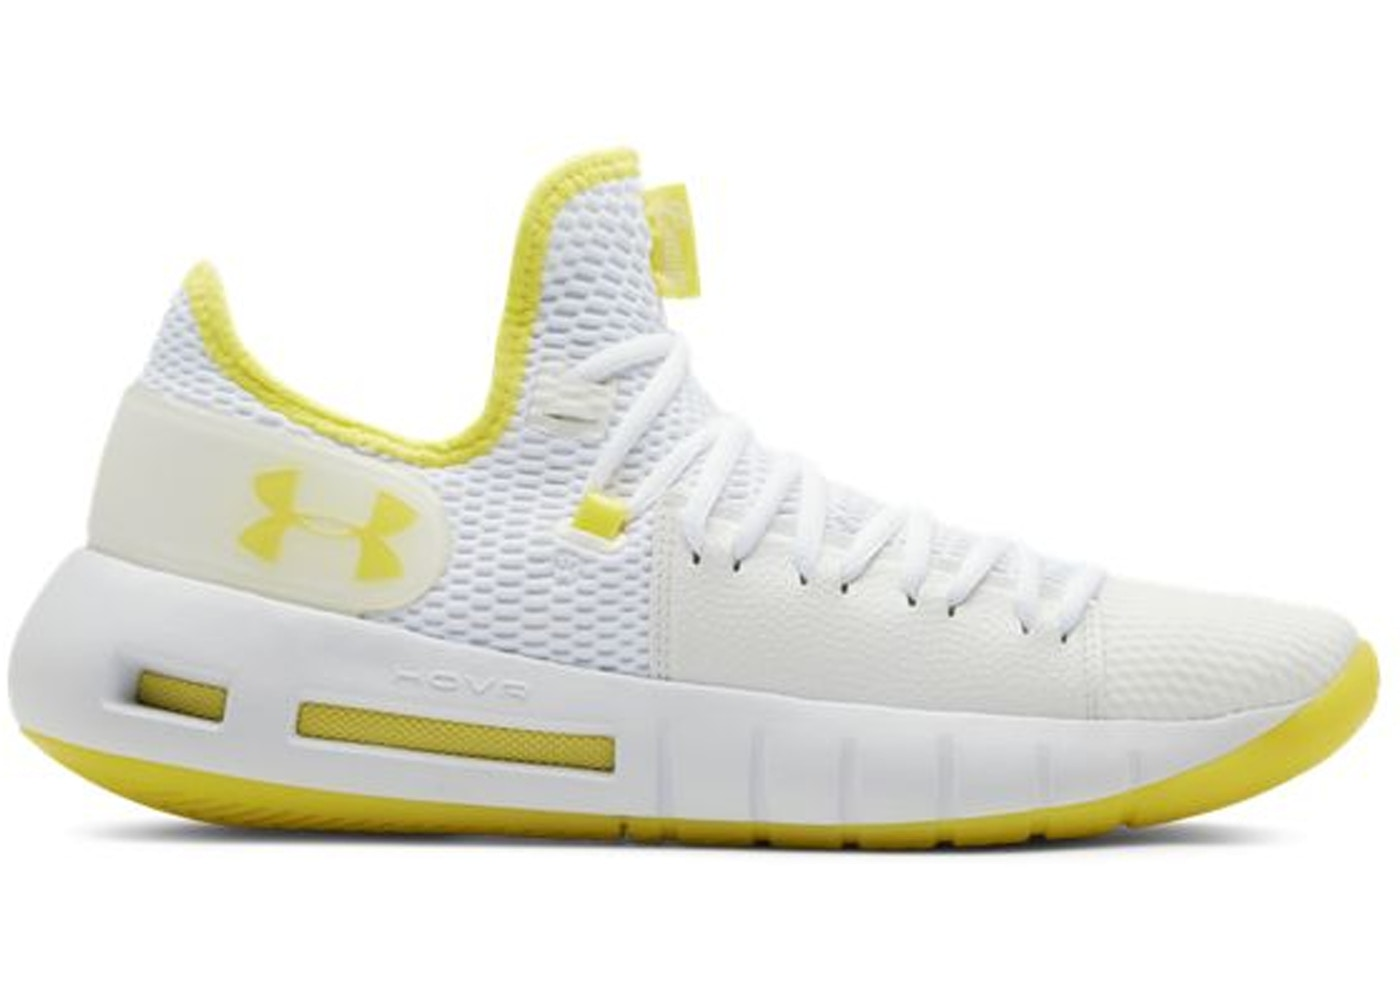 reputable site d1be5 40788 StockX: Buy and Sell Sneakers, Streetwear, Handbags, Watches